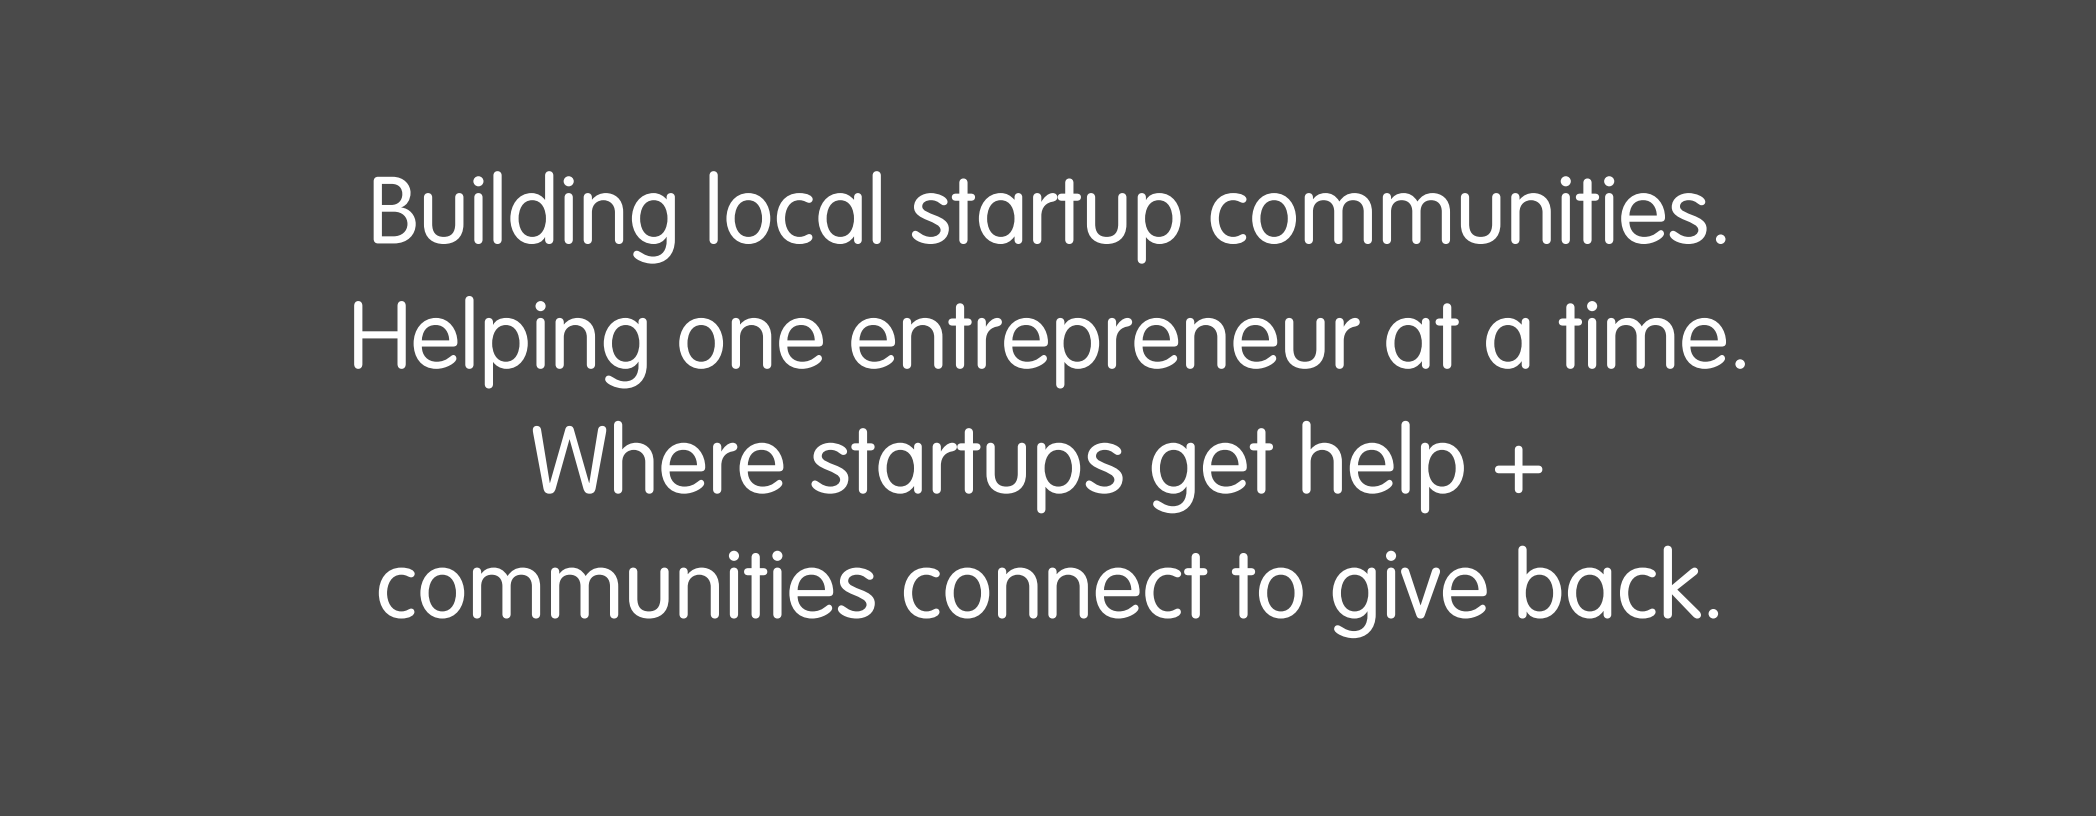 Building local startup communities. Helping one entrepreneur at a time. Where startups get help +  communities connect to give back.